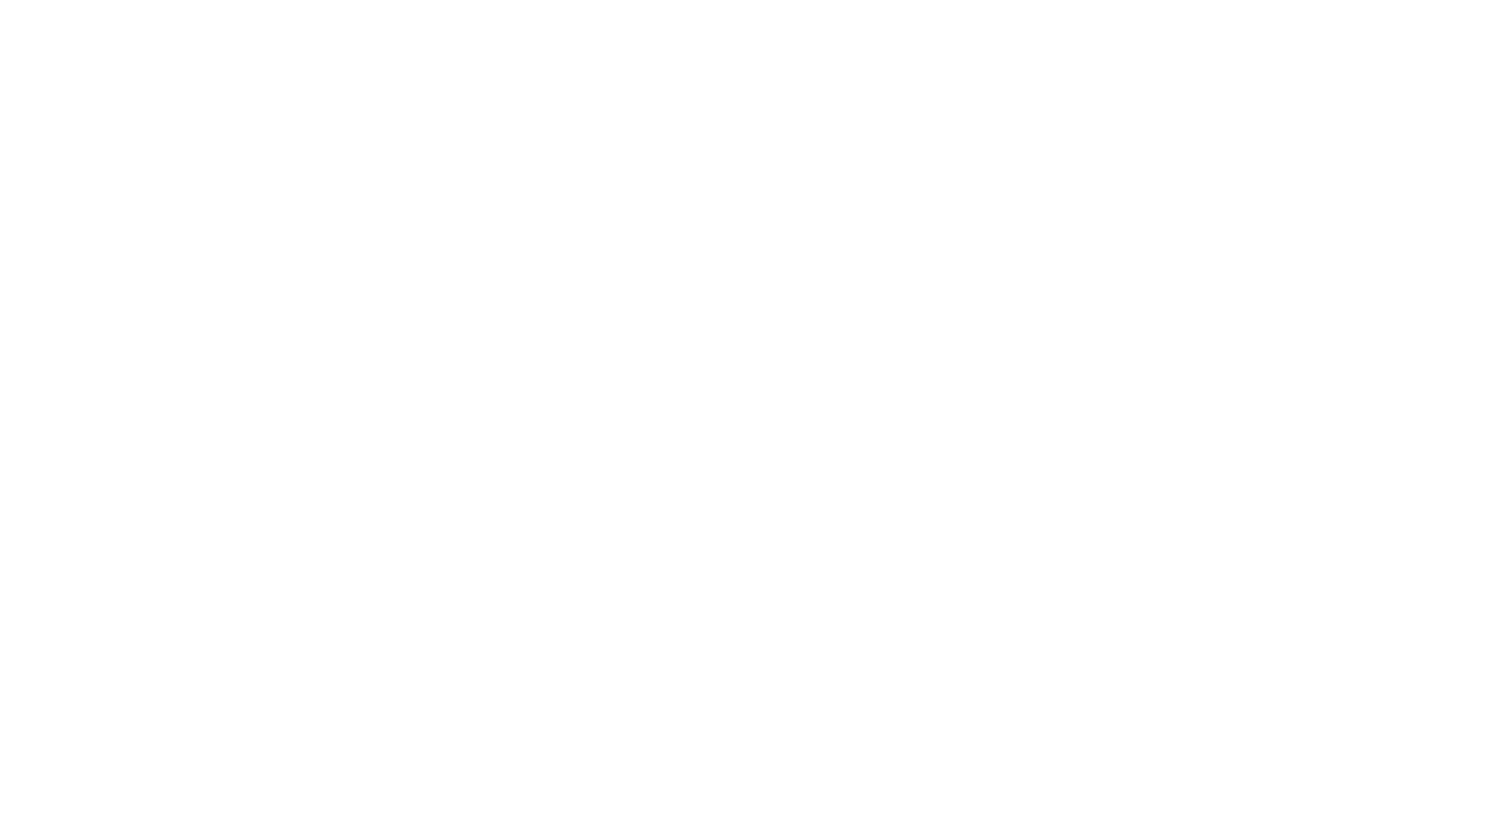 South Dakota: Great Faces Great Places